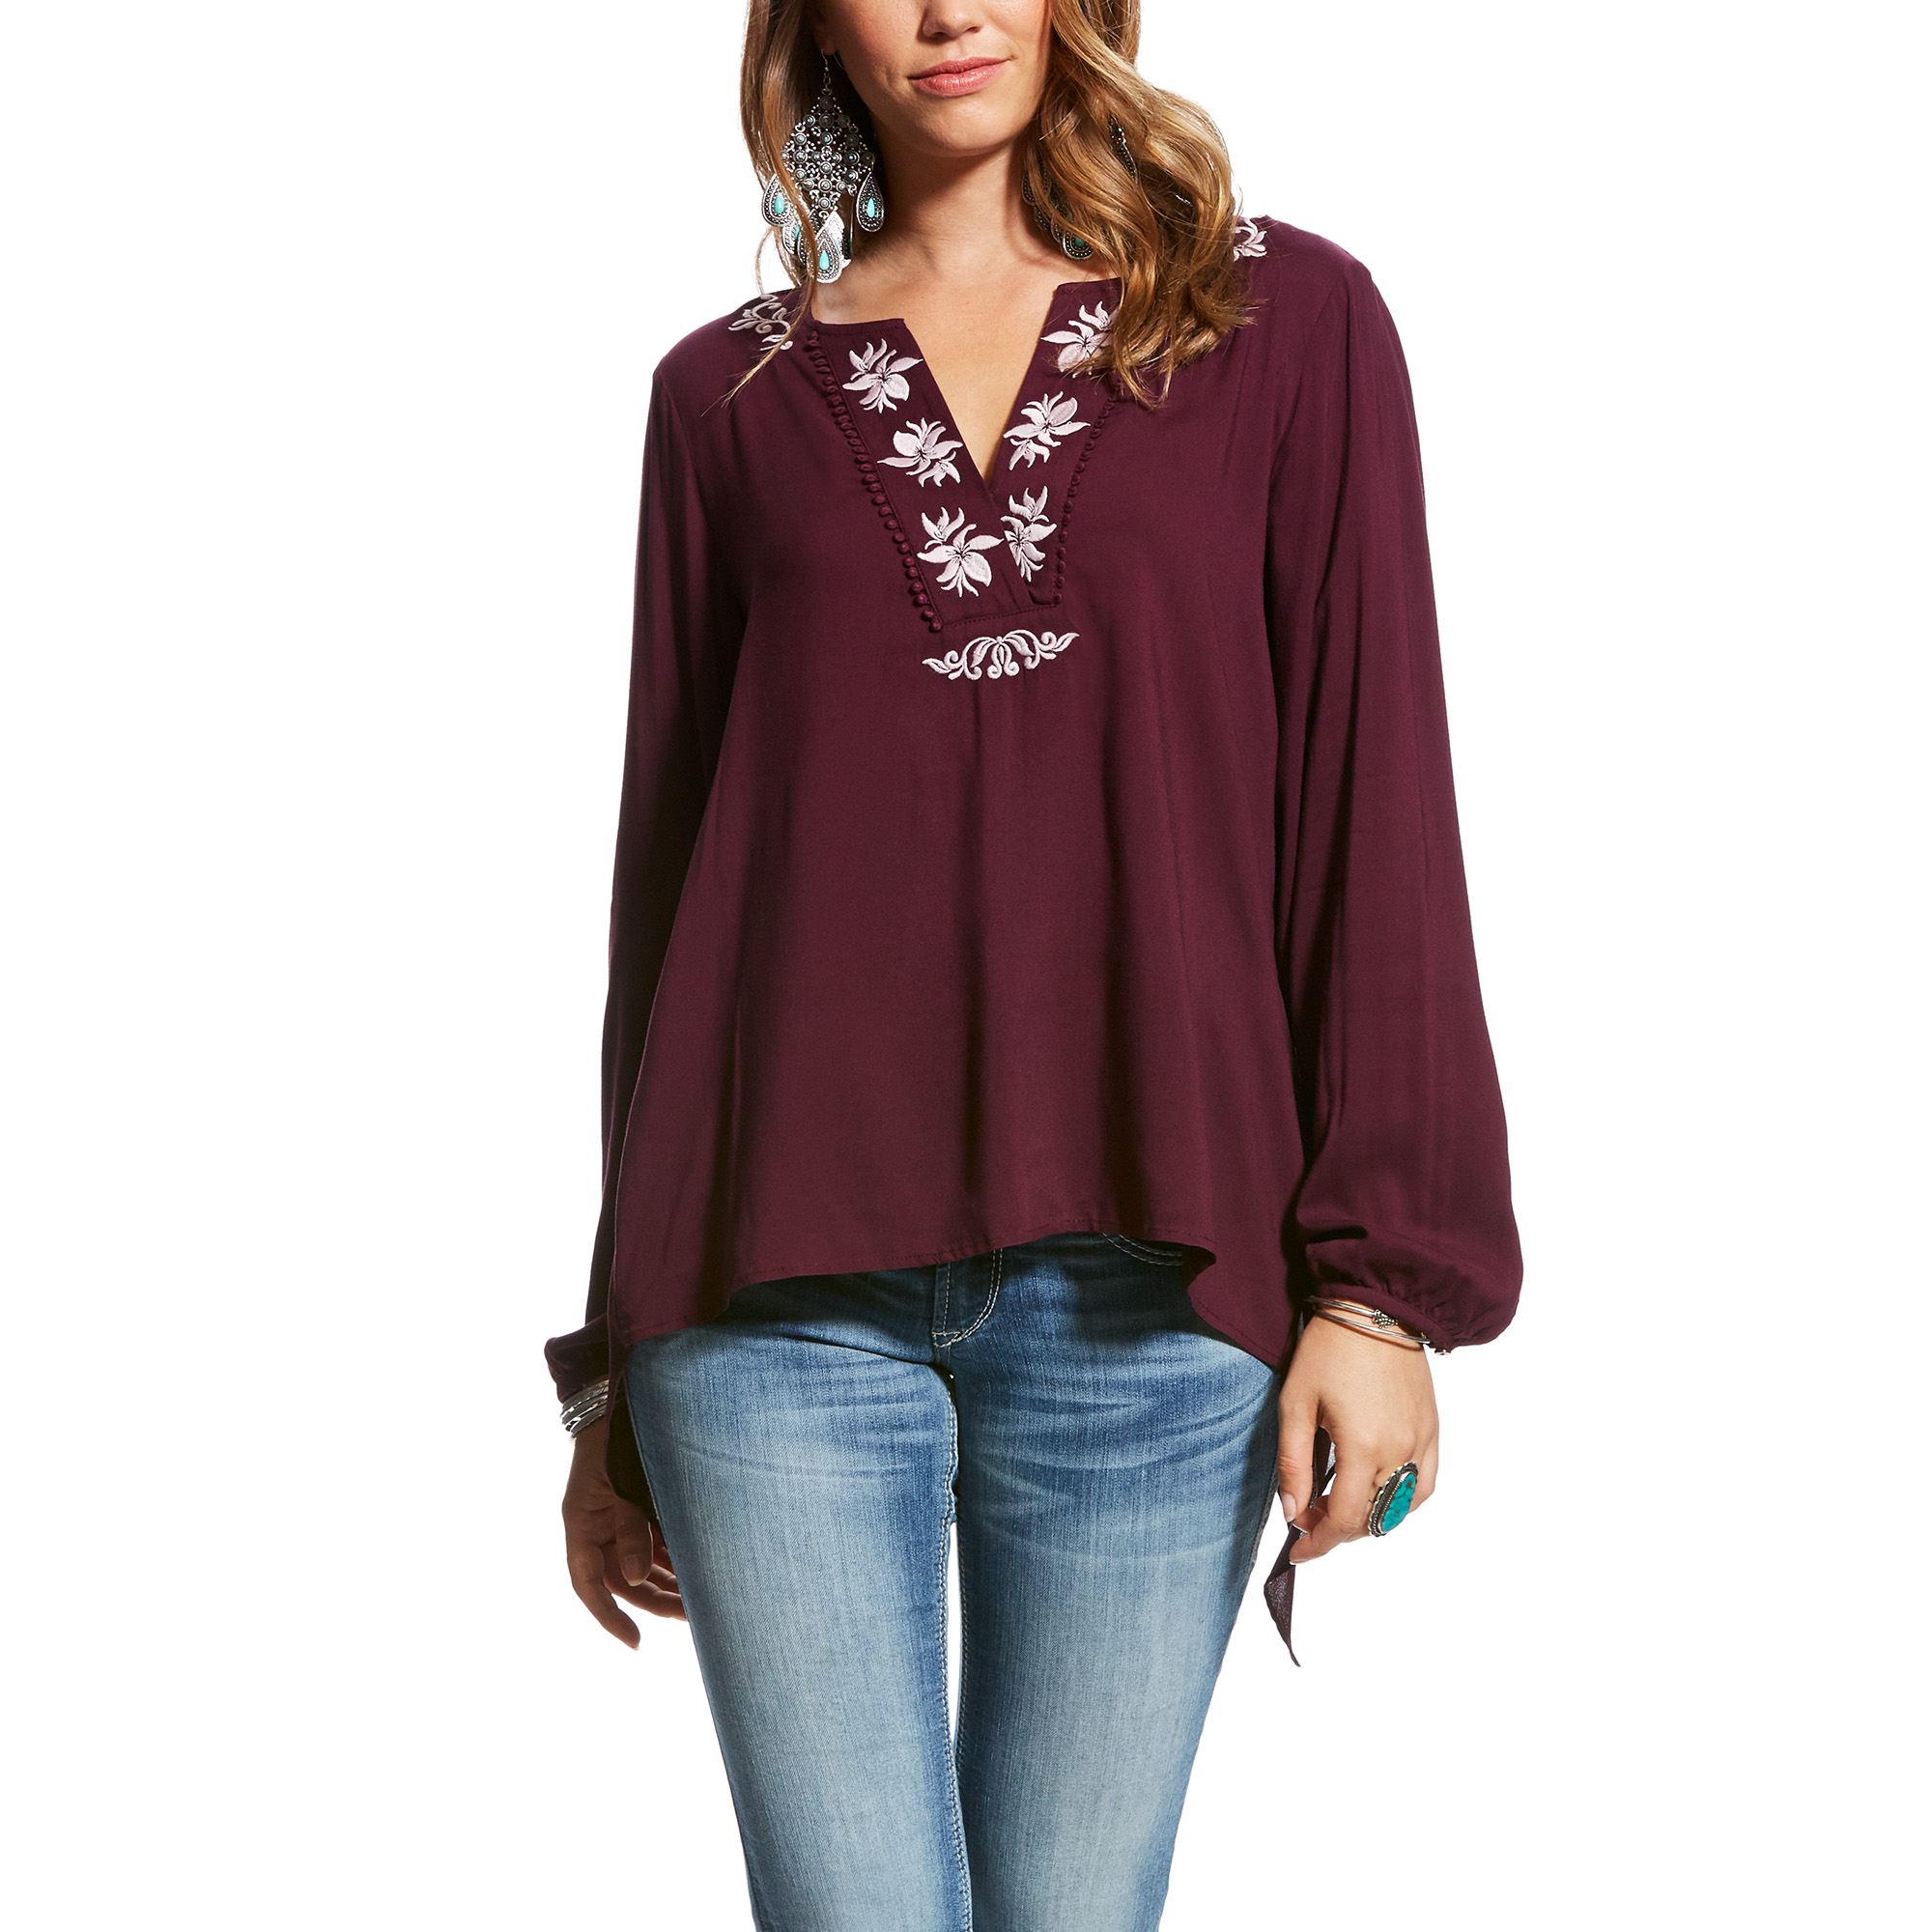 Poet Blouse from Ariat